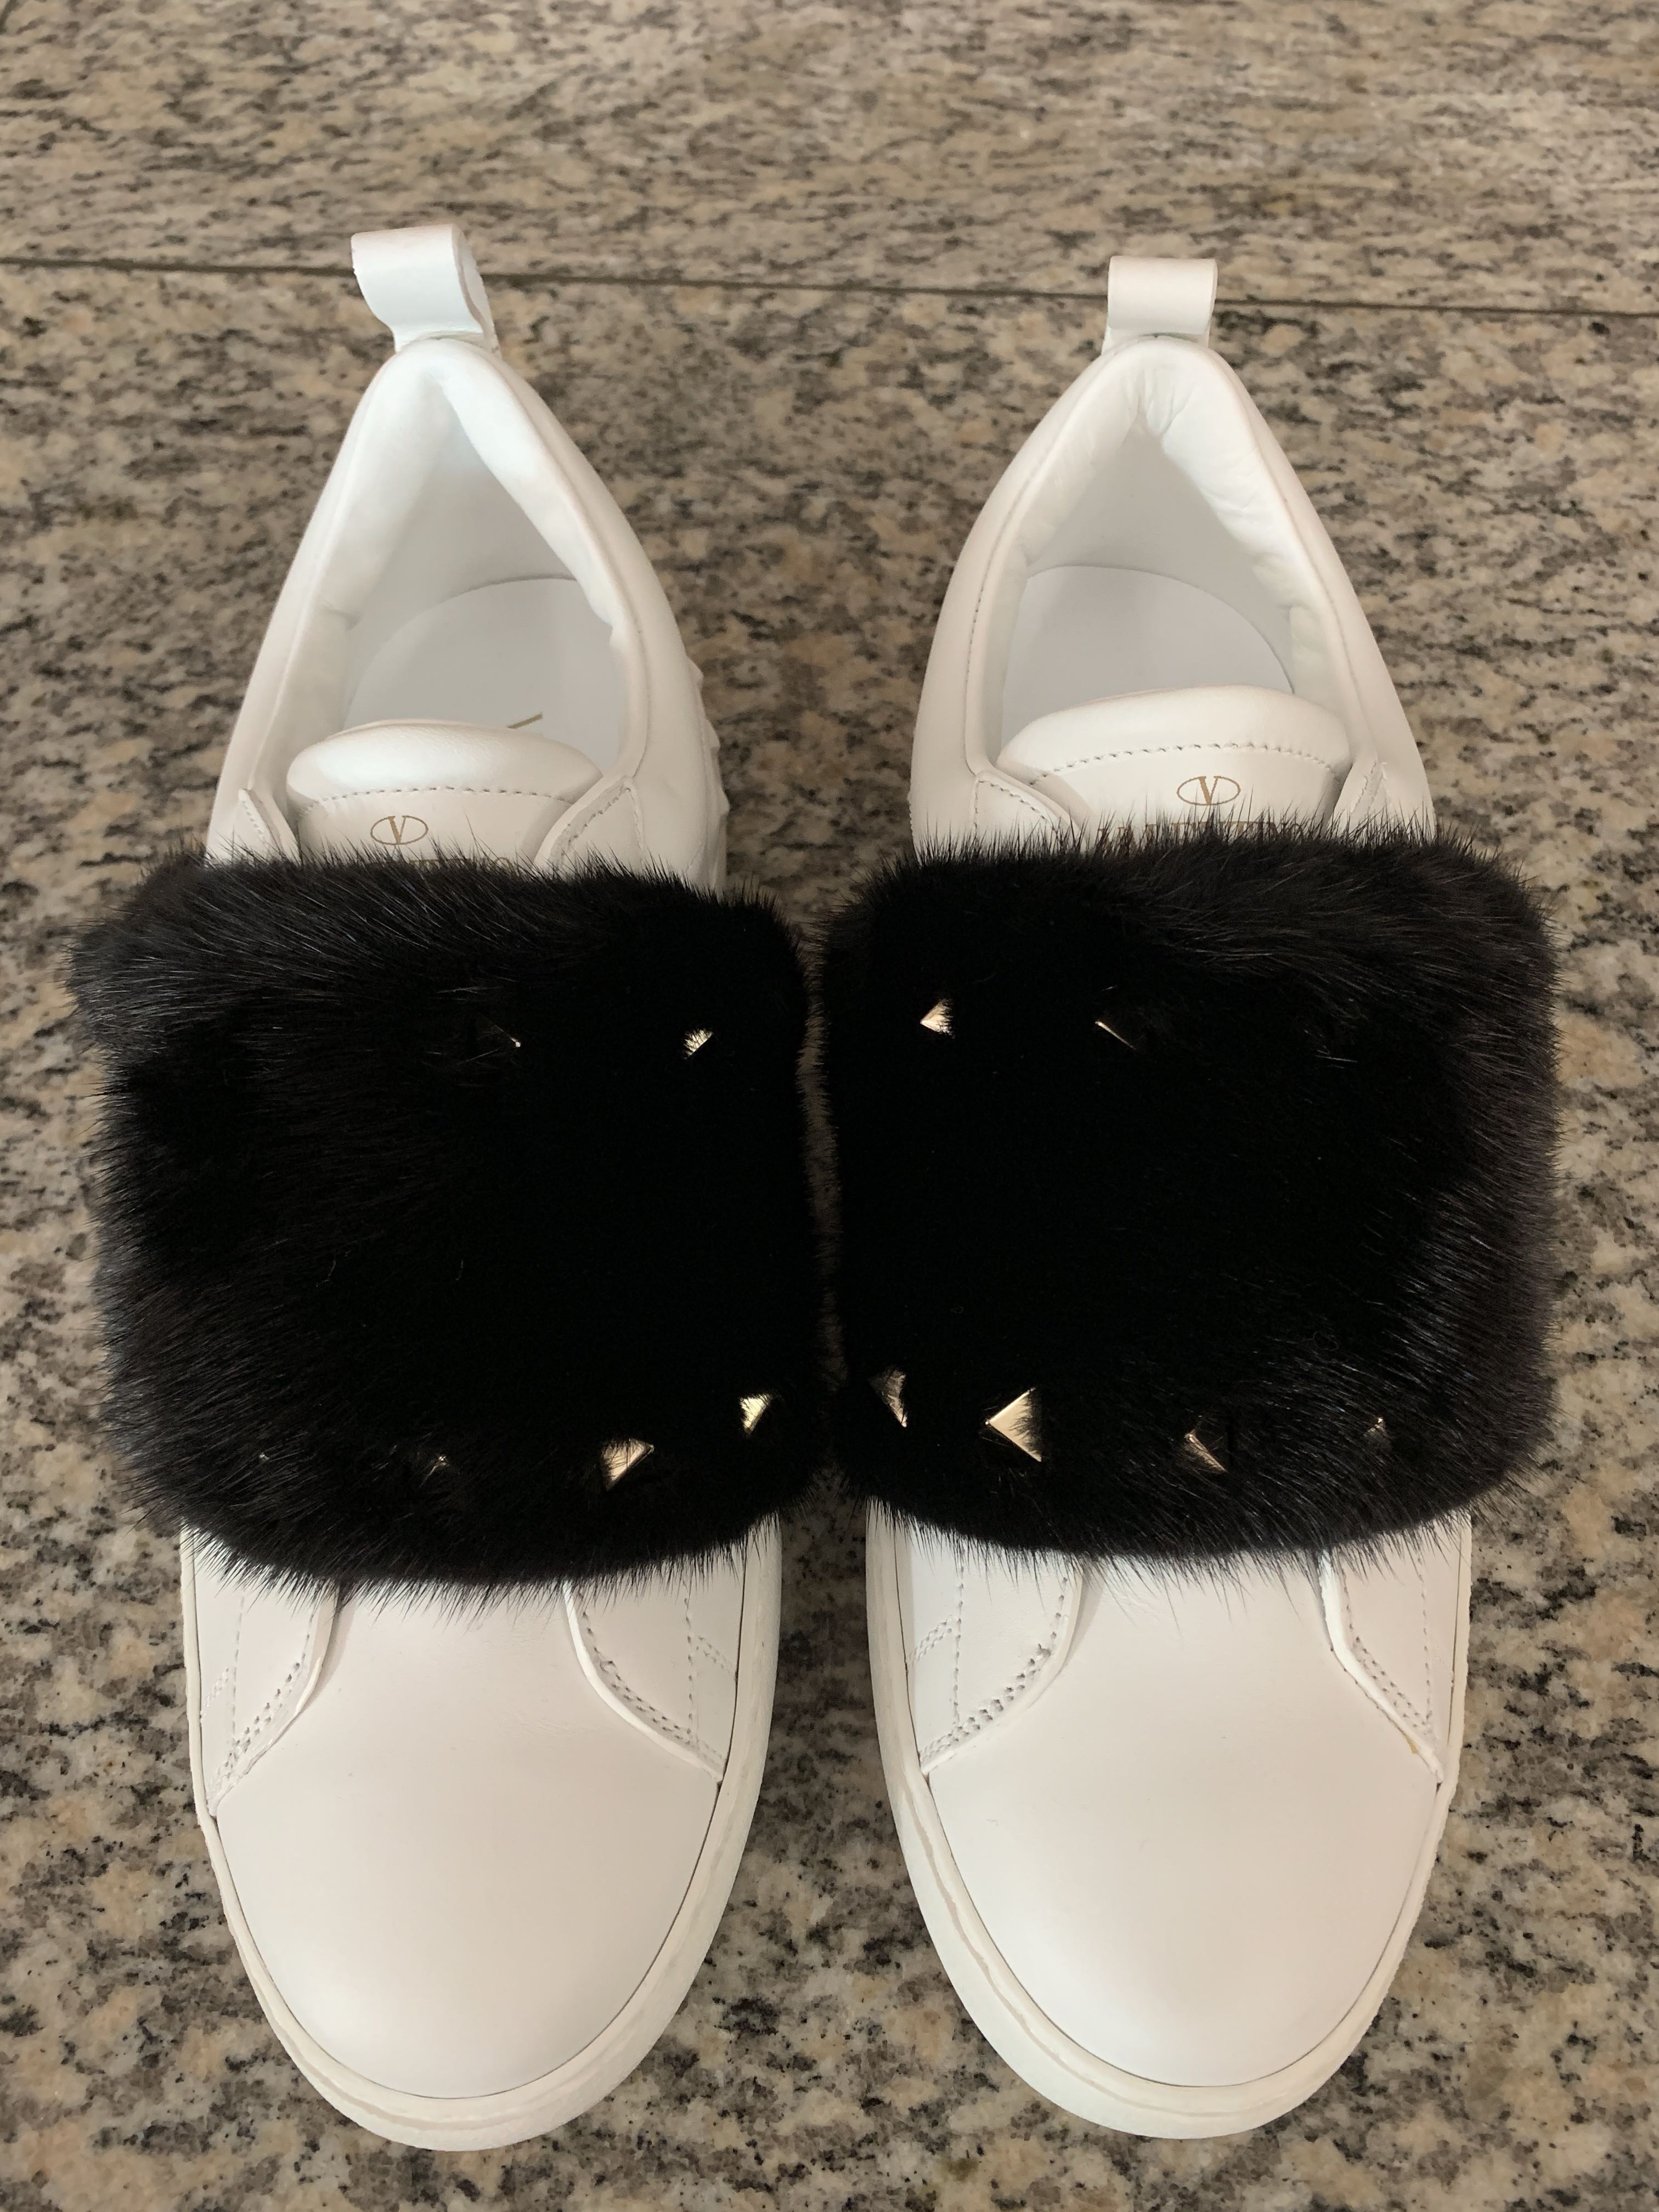 ddc8f19b9 Valentino White with Black Fur   Gold Studs Sneakers